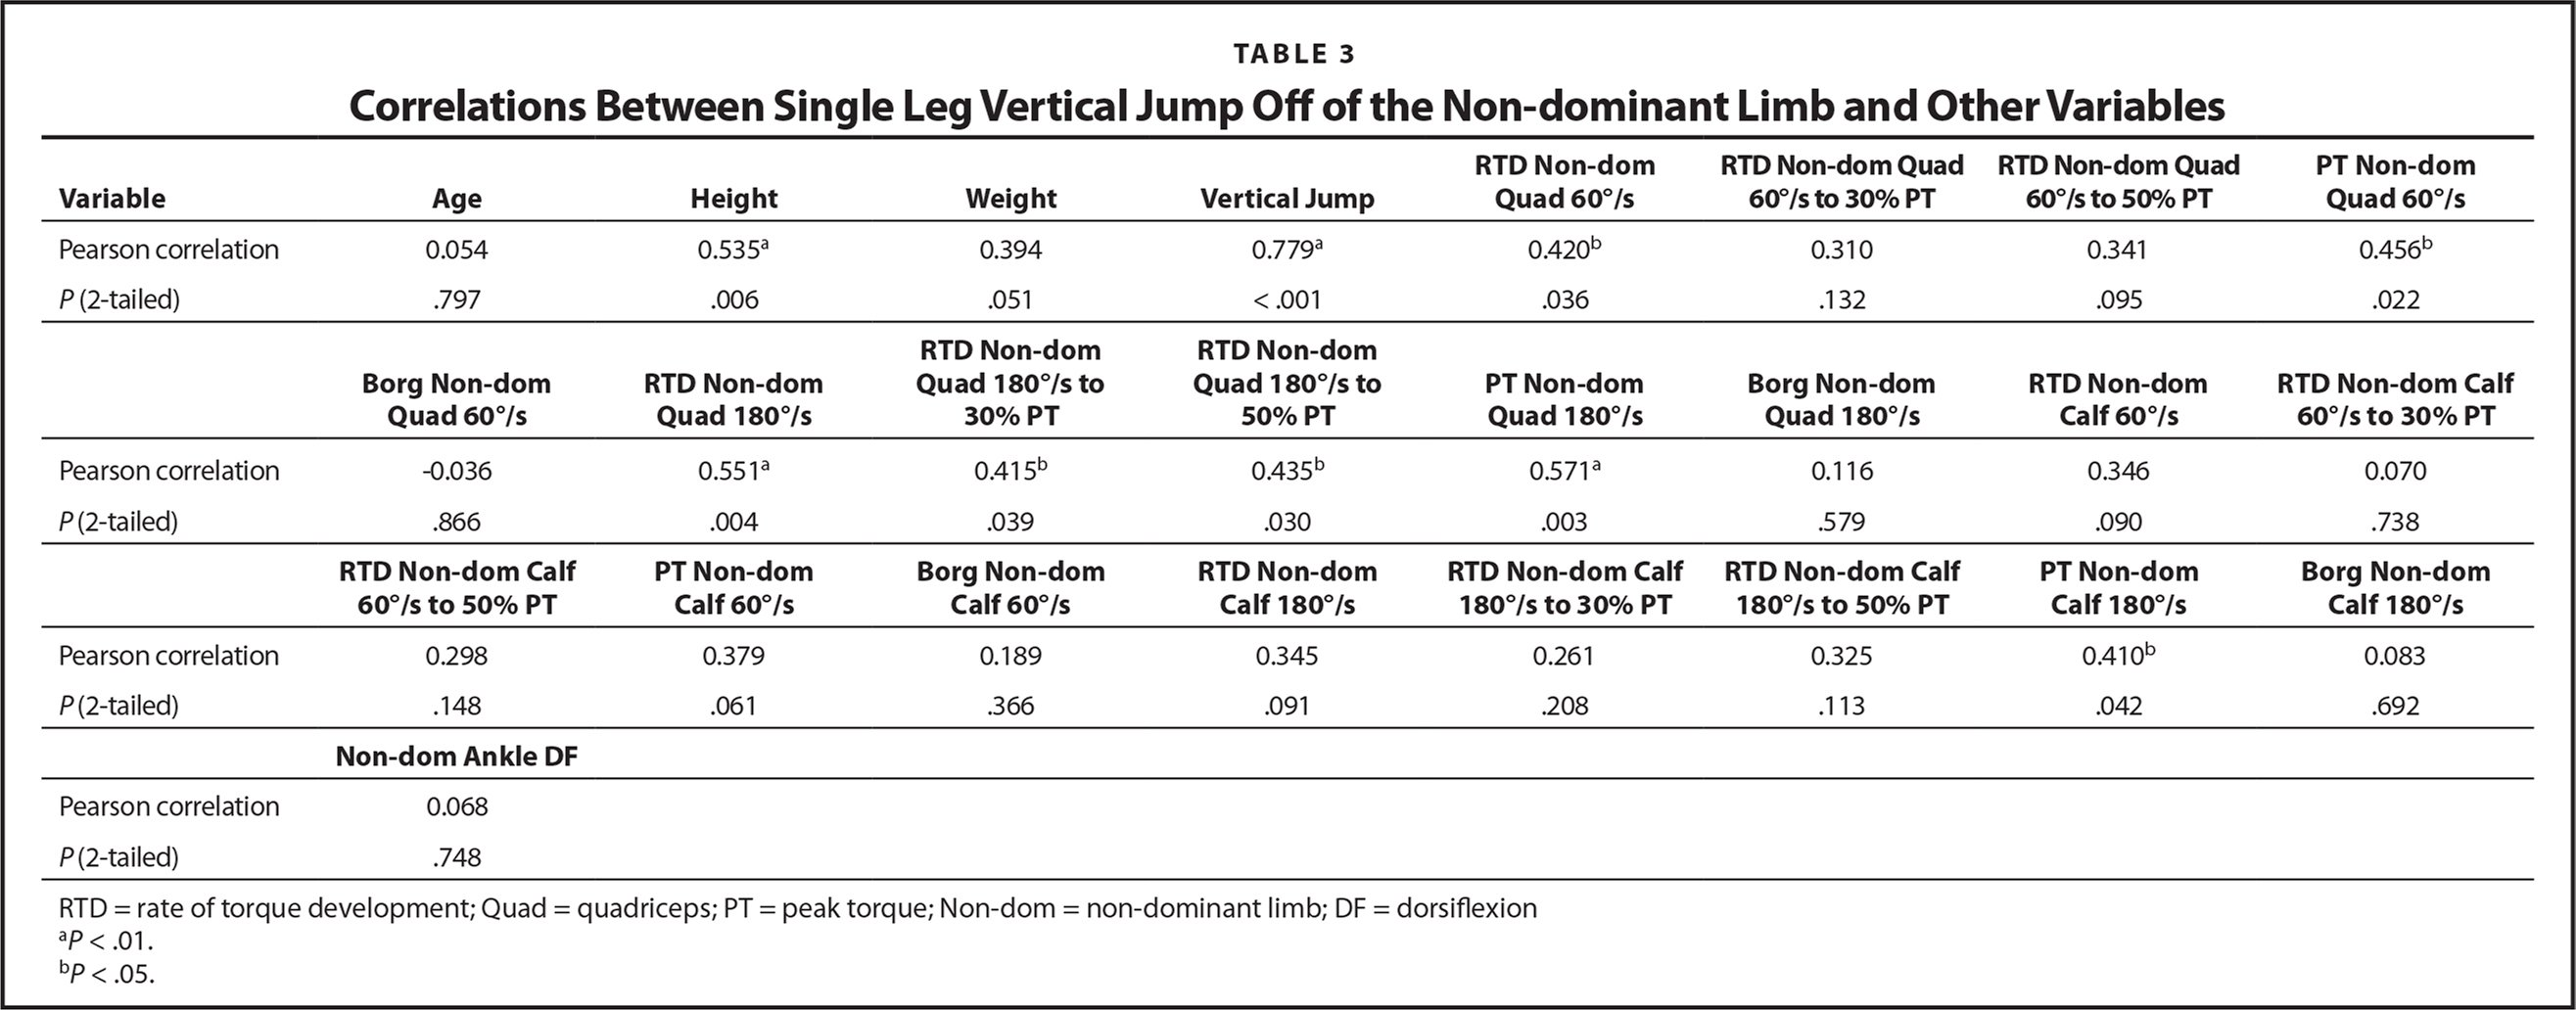 Correlations Between Single Leg Vertical Jump Off of the Non-dominant Limb and Other Variables